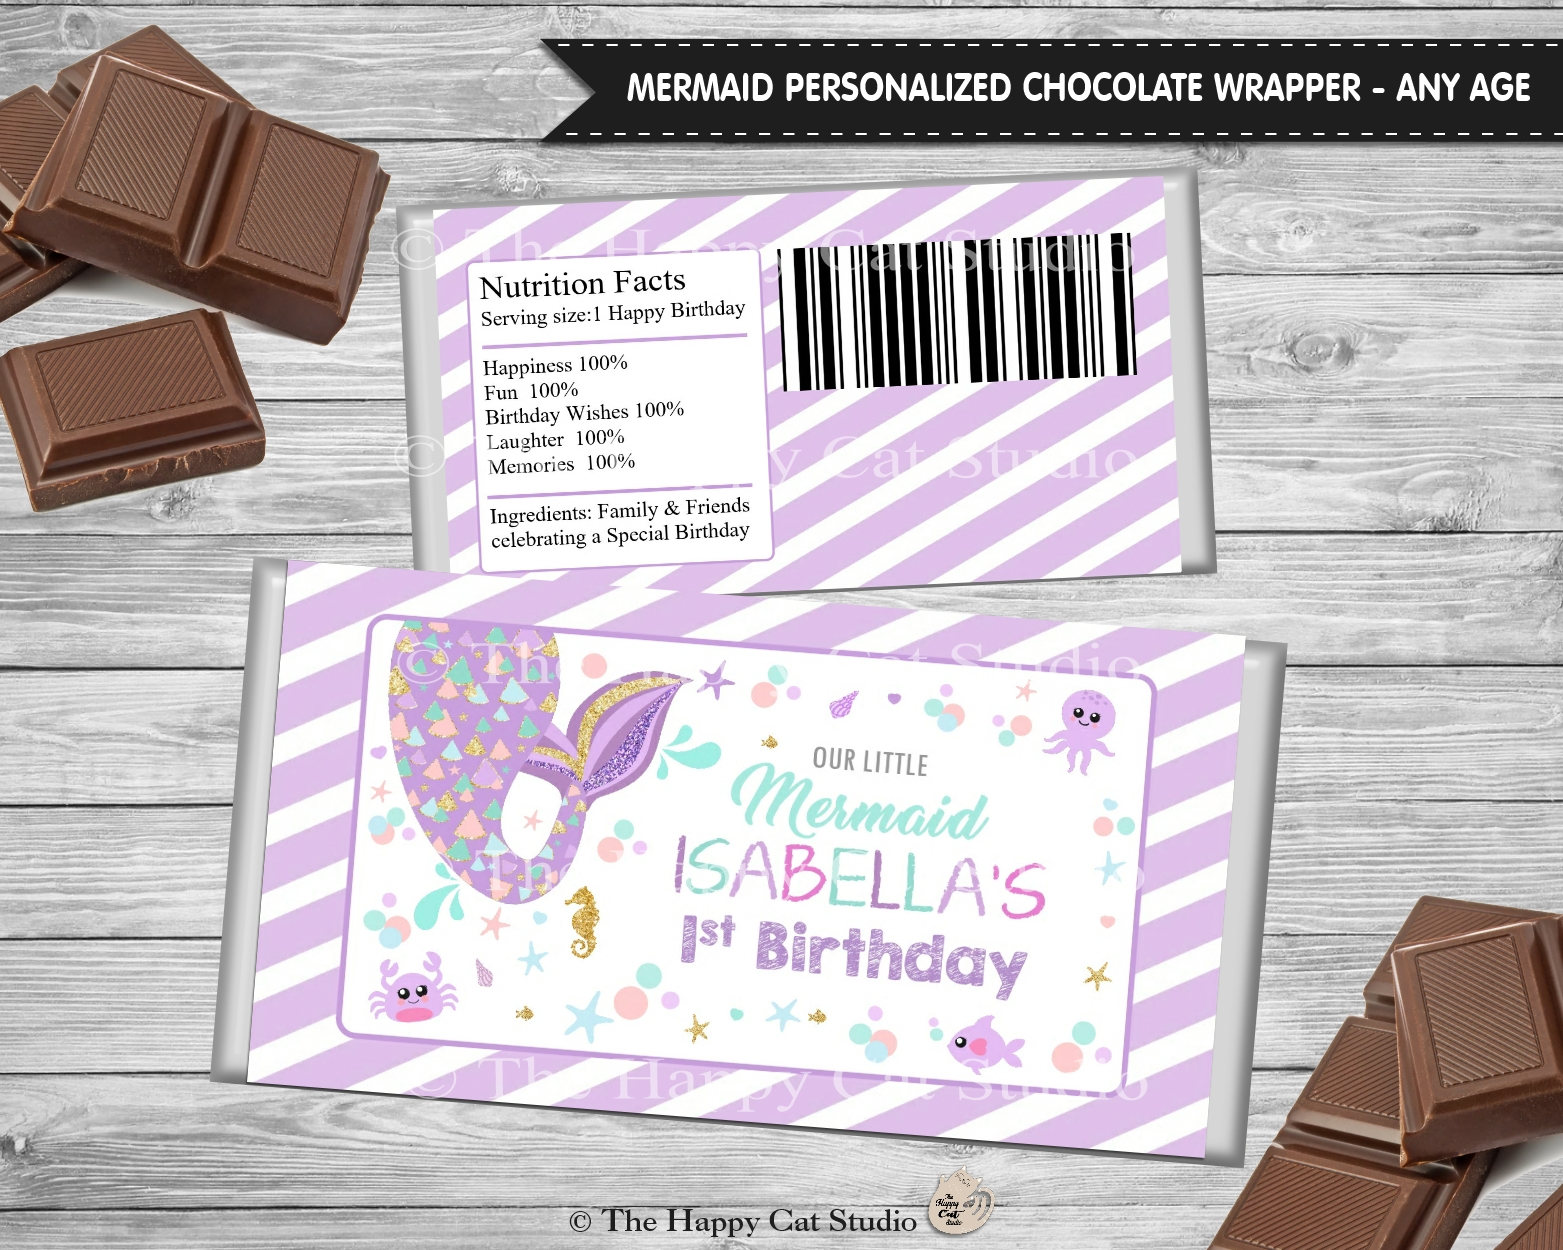 Mermaid Chocolate Bar Wrappers Personalized Printable 1st